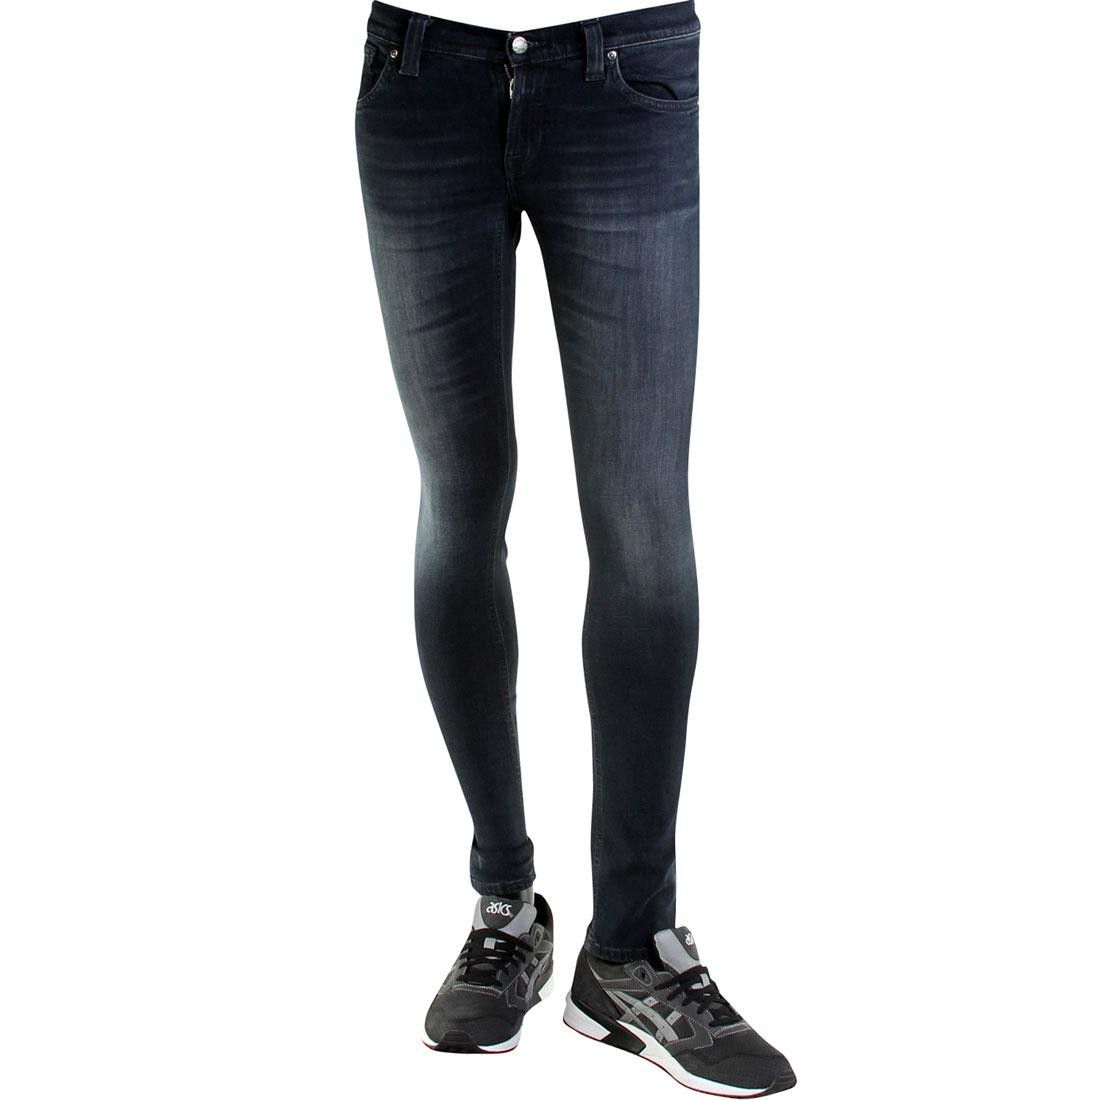 Image is loading Nudie-Jeans-Co-Tight-Long-John-black-gray 1f80788b86bb